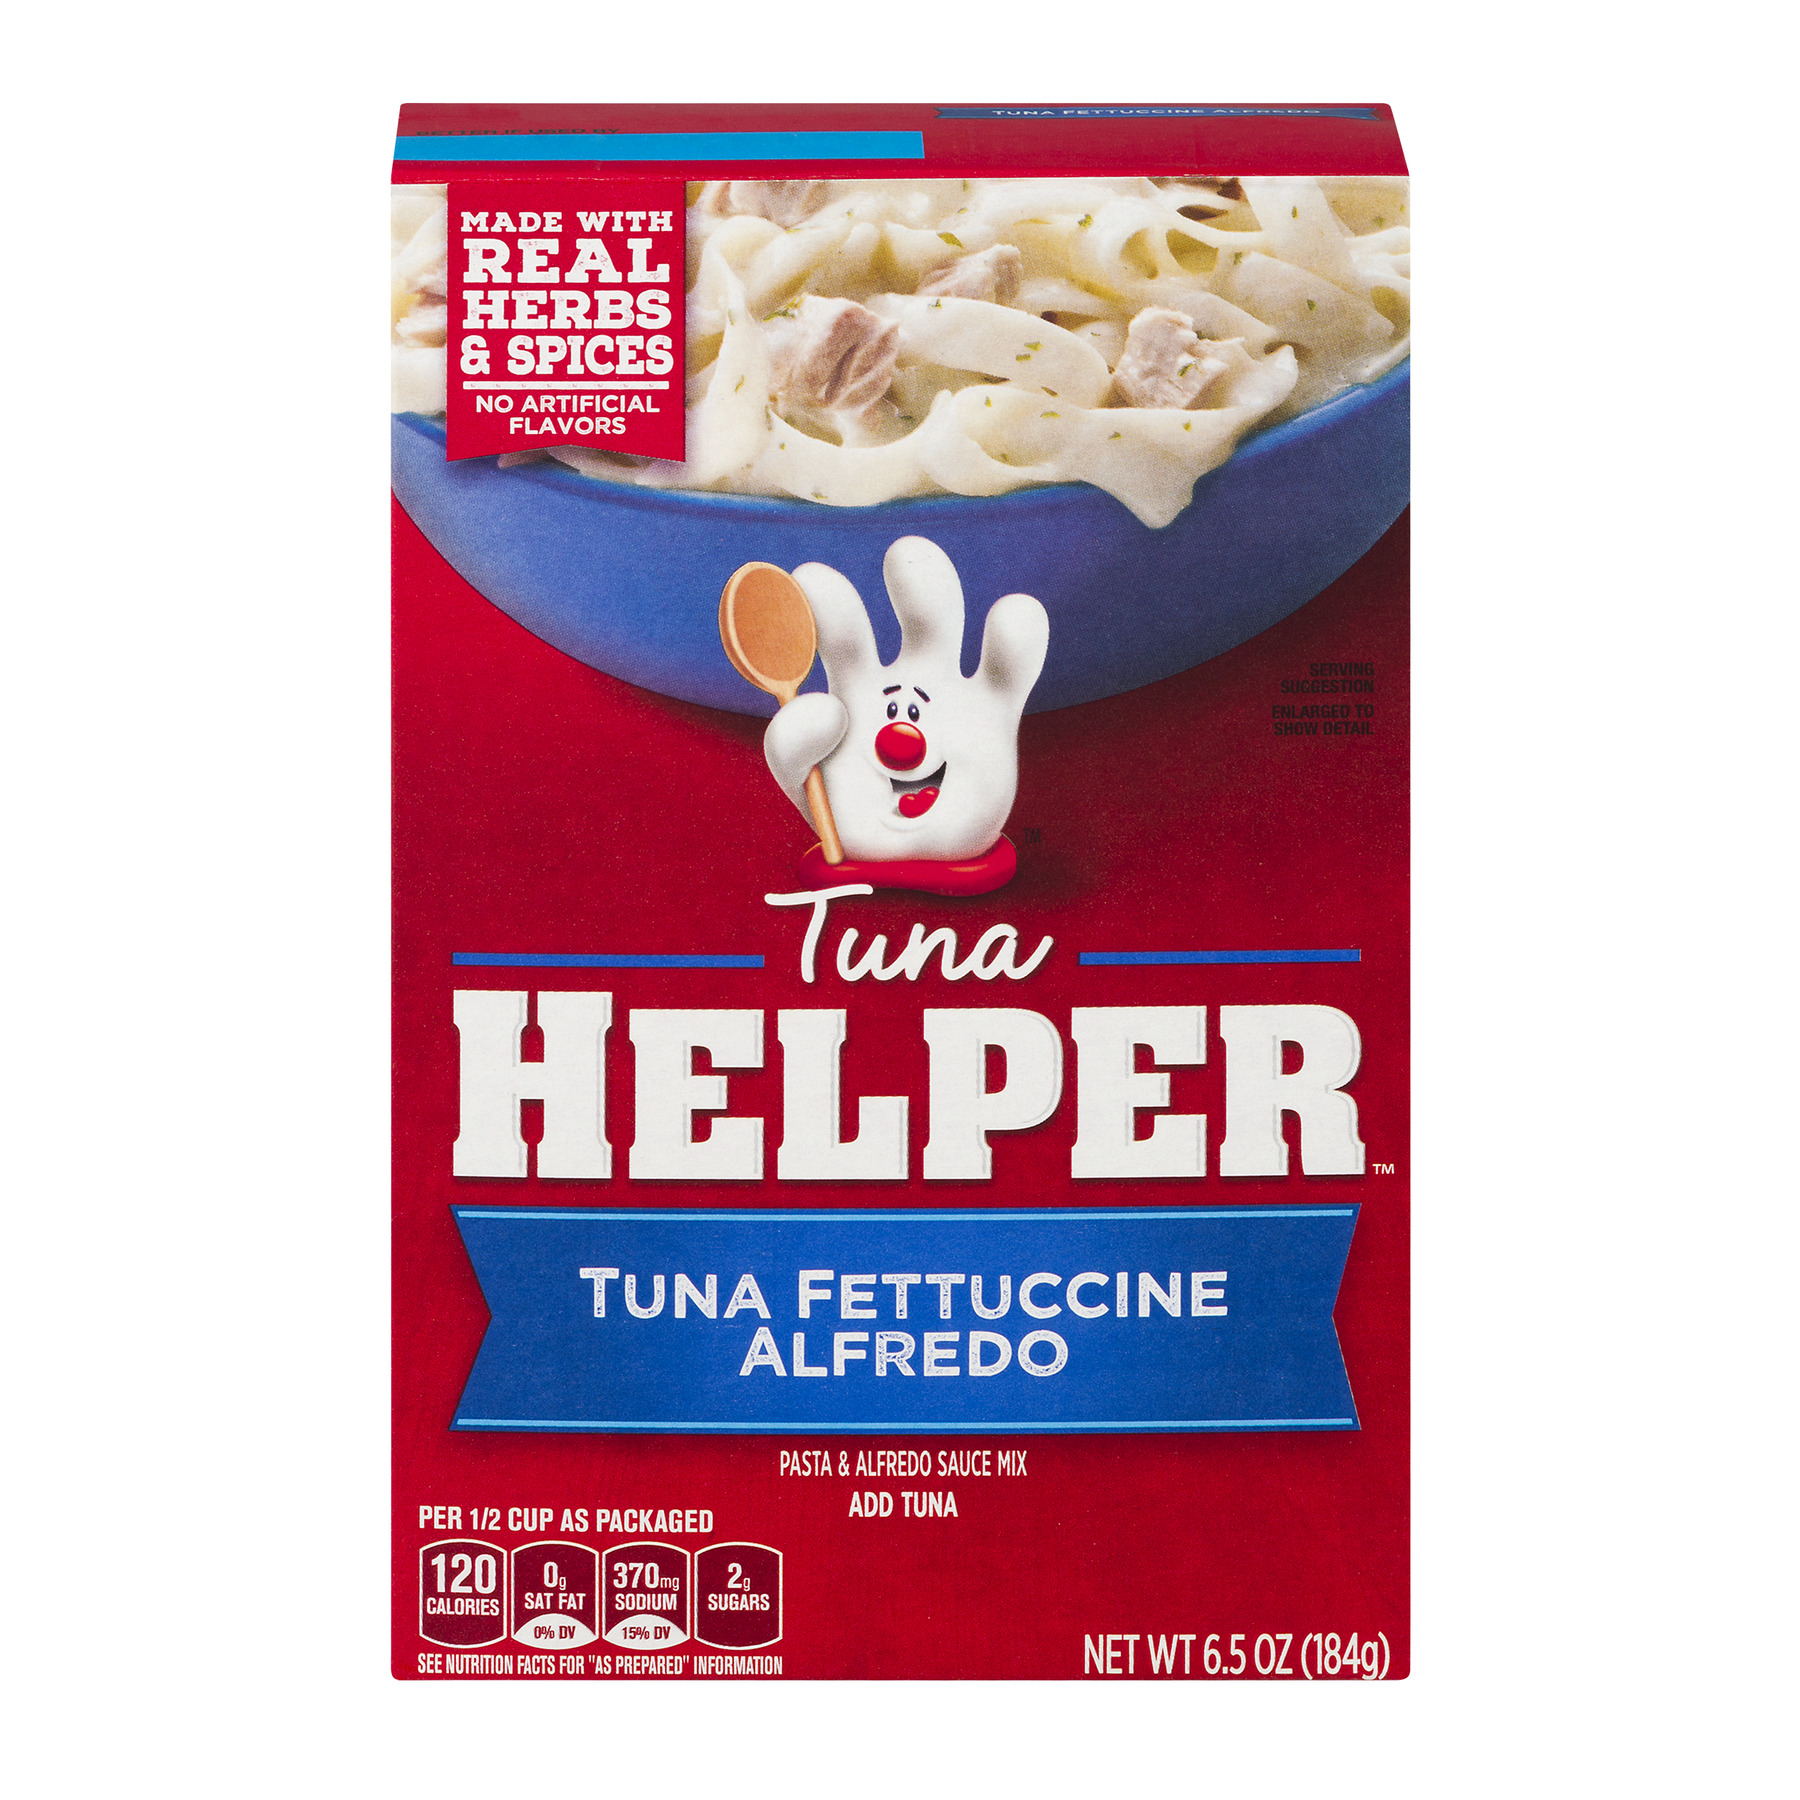 Betty Crocker Tuna Helper Tuna Fettuccine Alfredo 6.5 oz Box